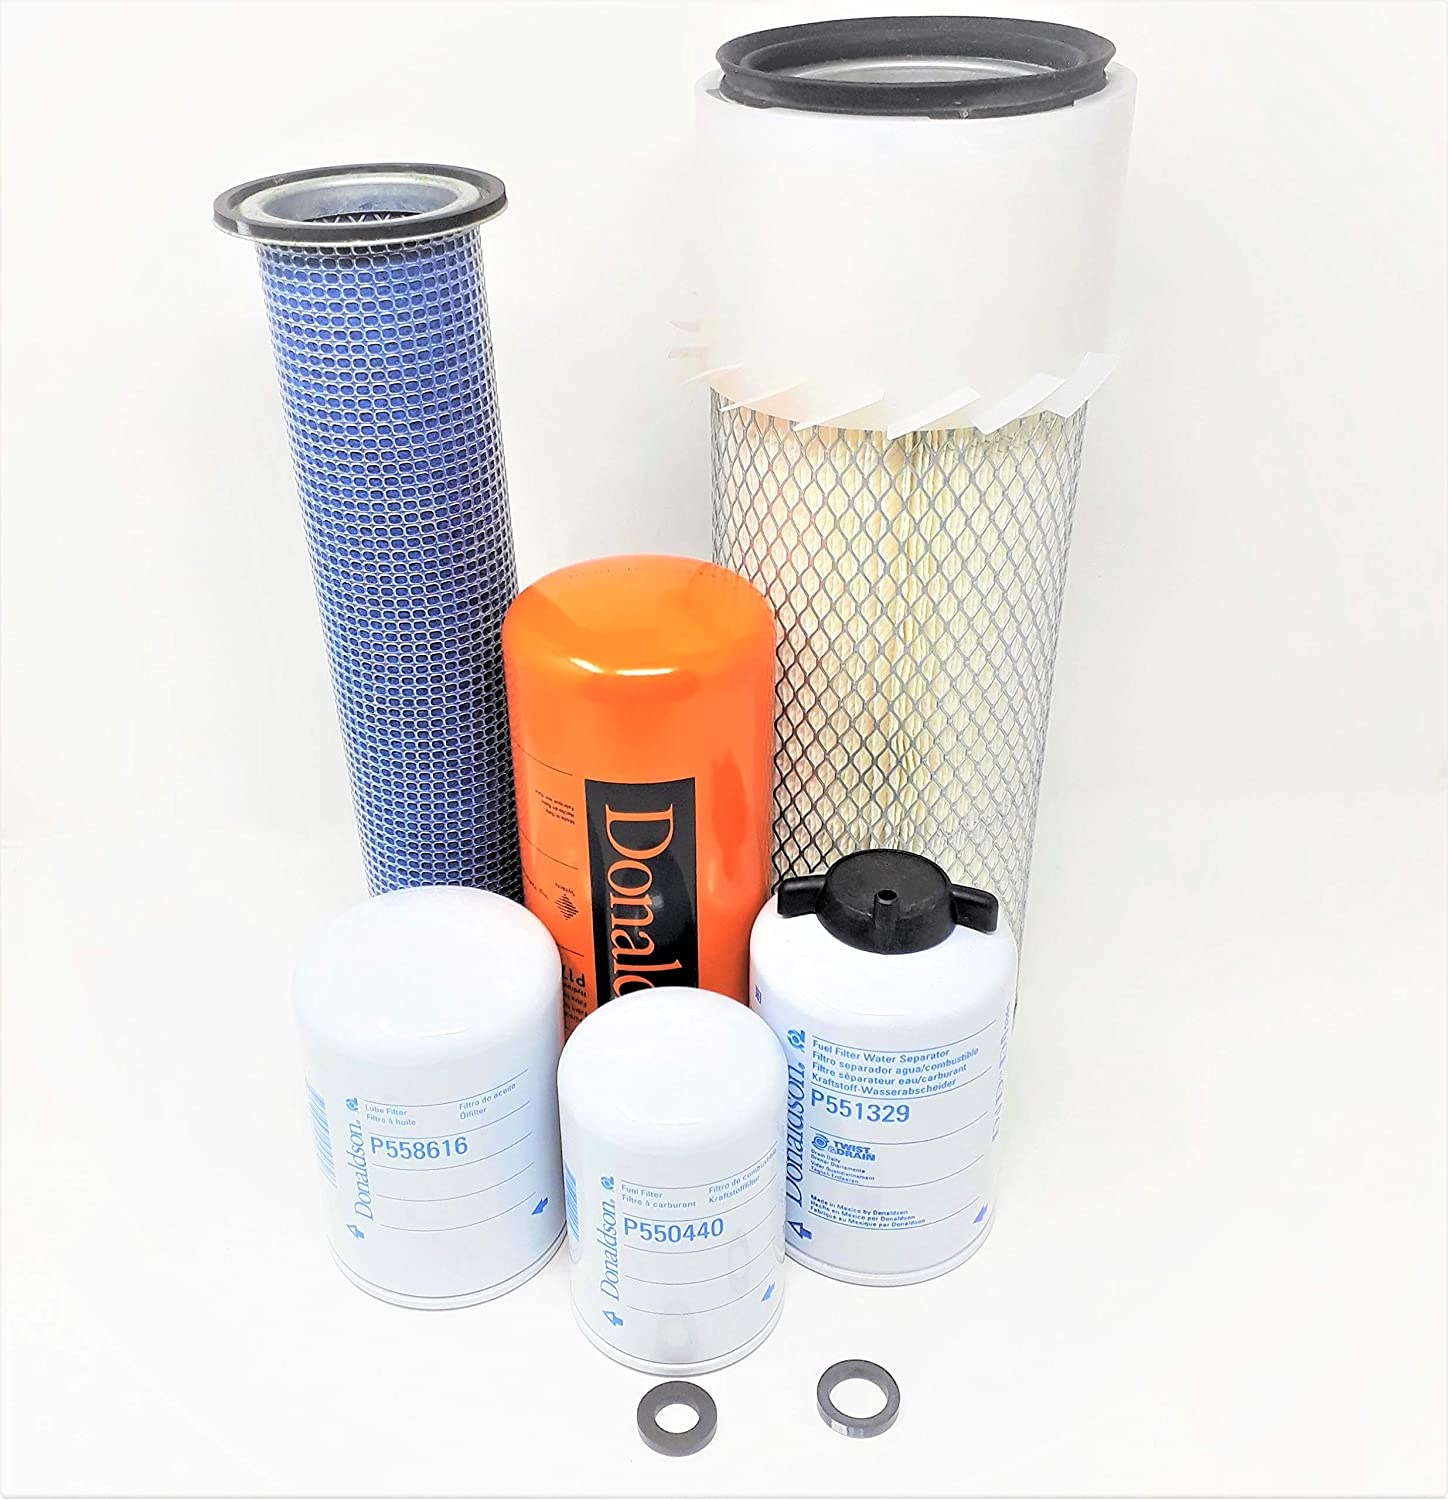 Donaldson Axial Seal Air Filters Case 1845C /& 1840 Maintenance Filters Kit